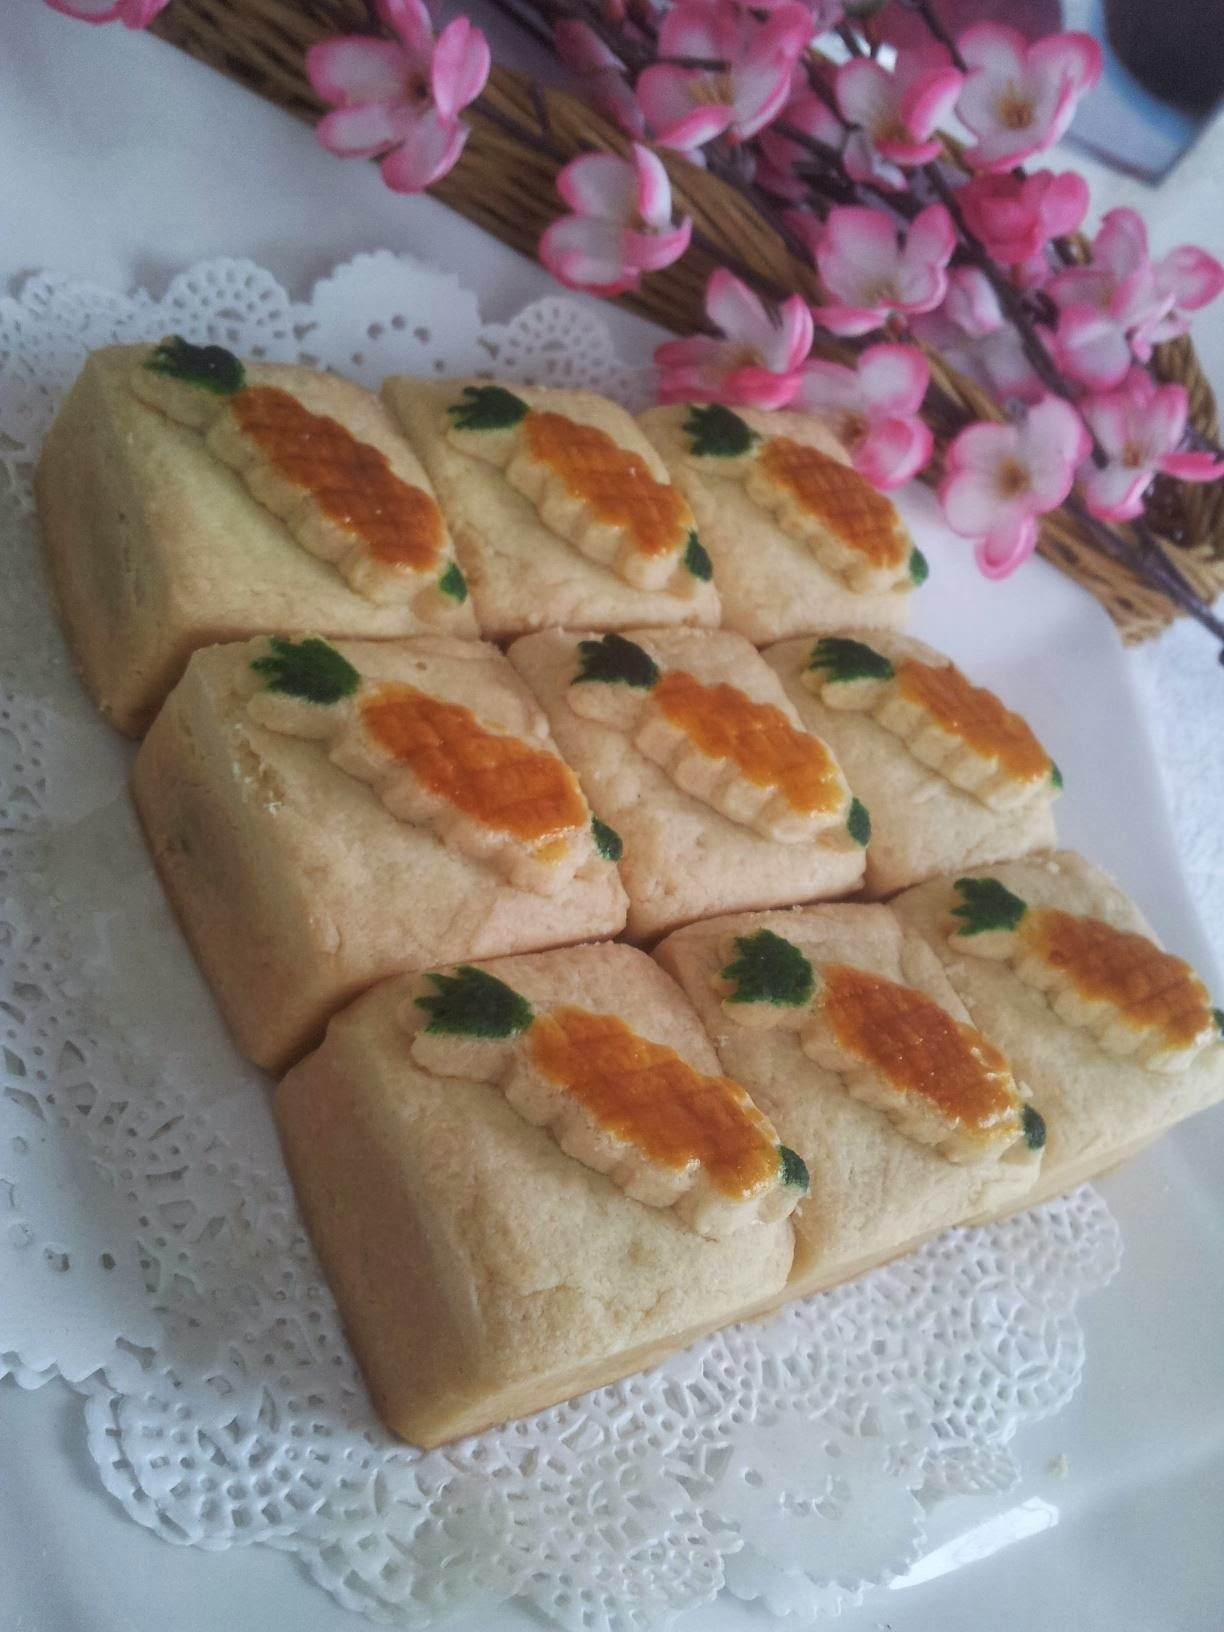 ~~  Cheesy Pineapple Tart  ~~ 奶酥黄梨饼  ~~